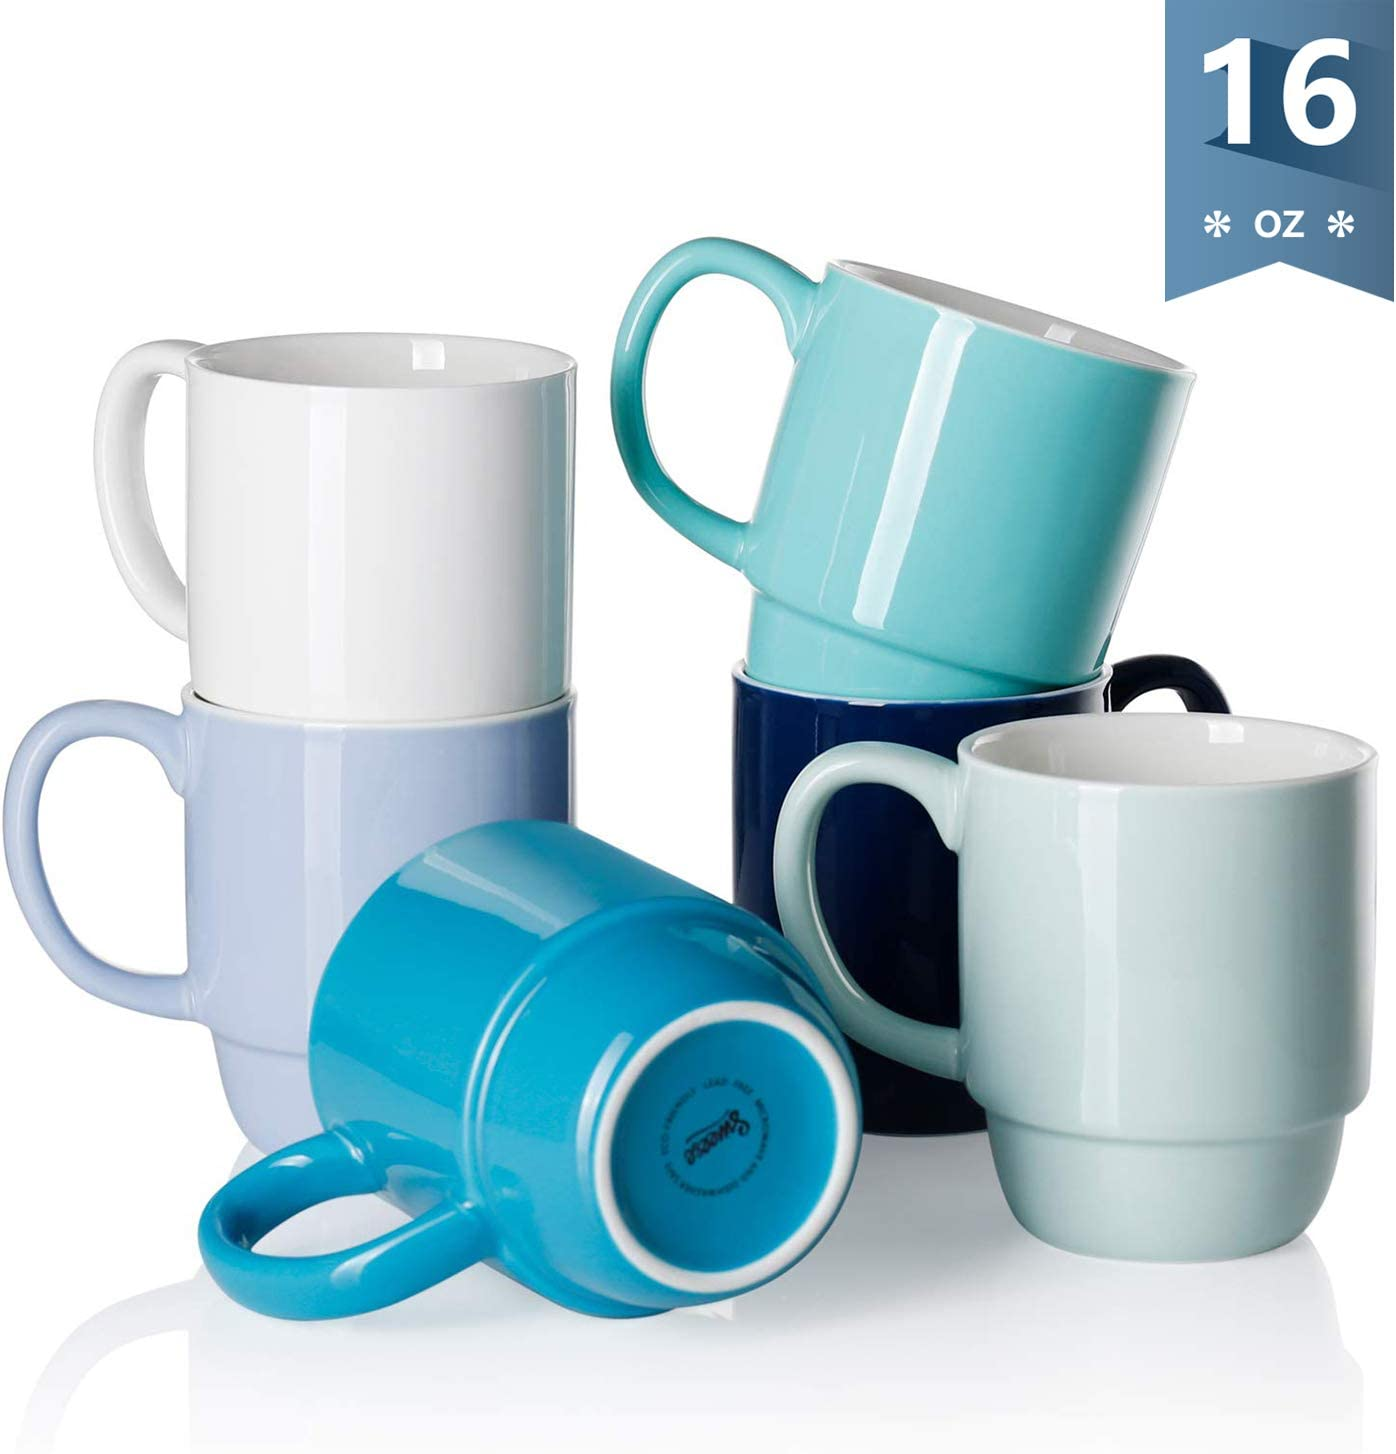 Sweese 605.003 Porcelain Stackable Mug Set - 16 Ounce for Coffee, Tea, Cocoa and Mulled Drinks - Set of 6, Cool Assorted Colors